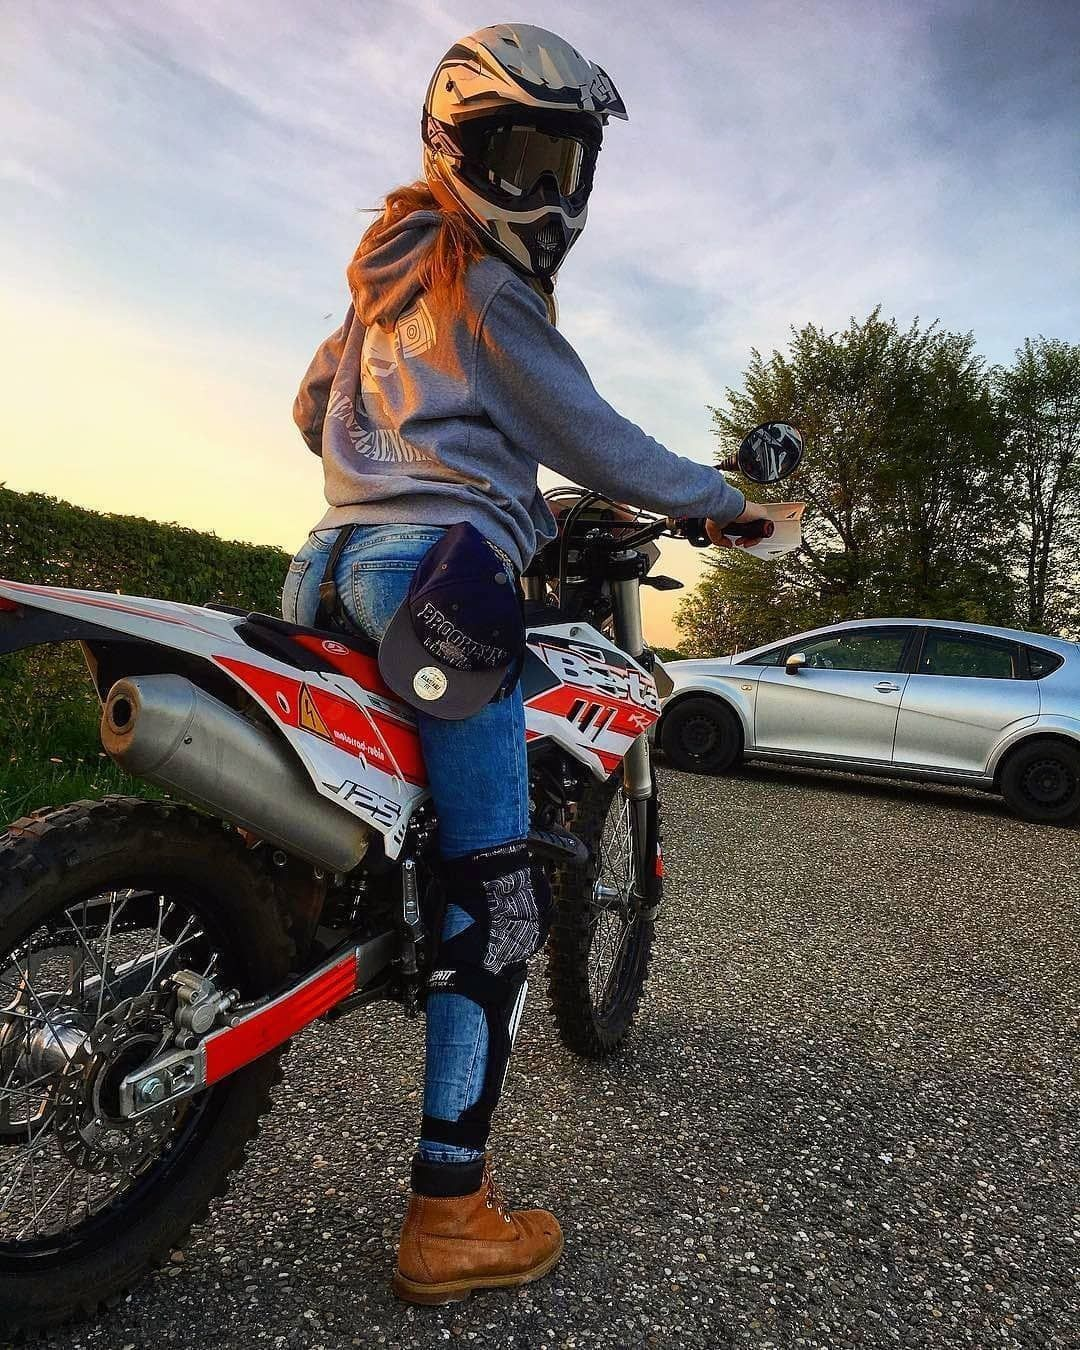 Letest Cars And Bikes Review With Images Dirt Bike Girl